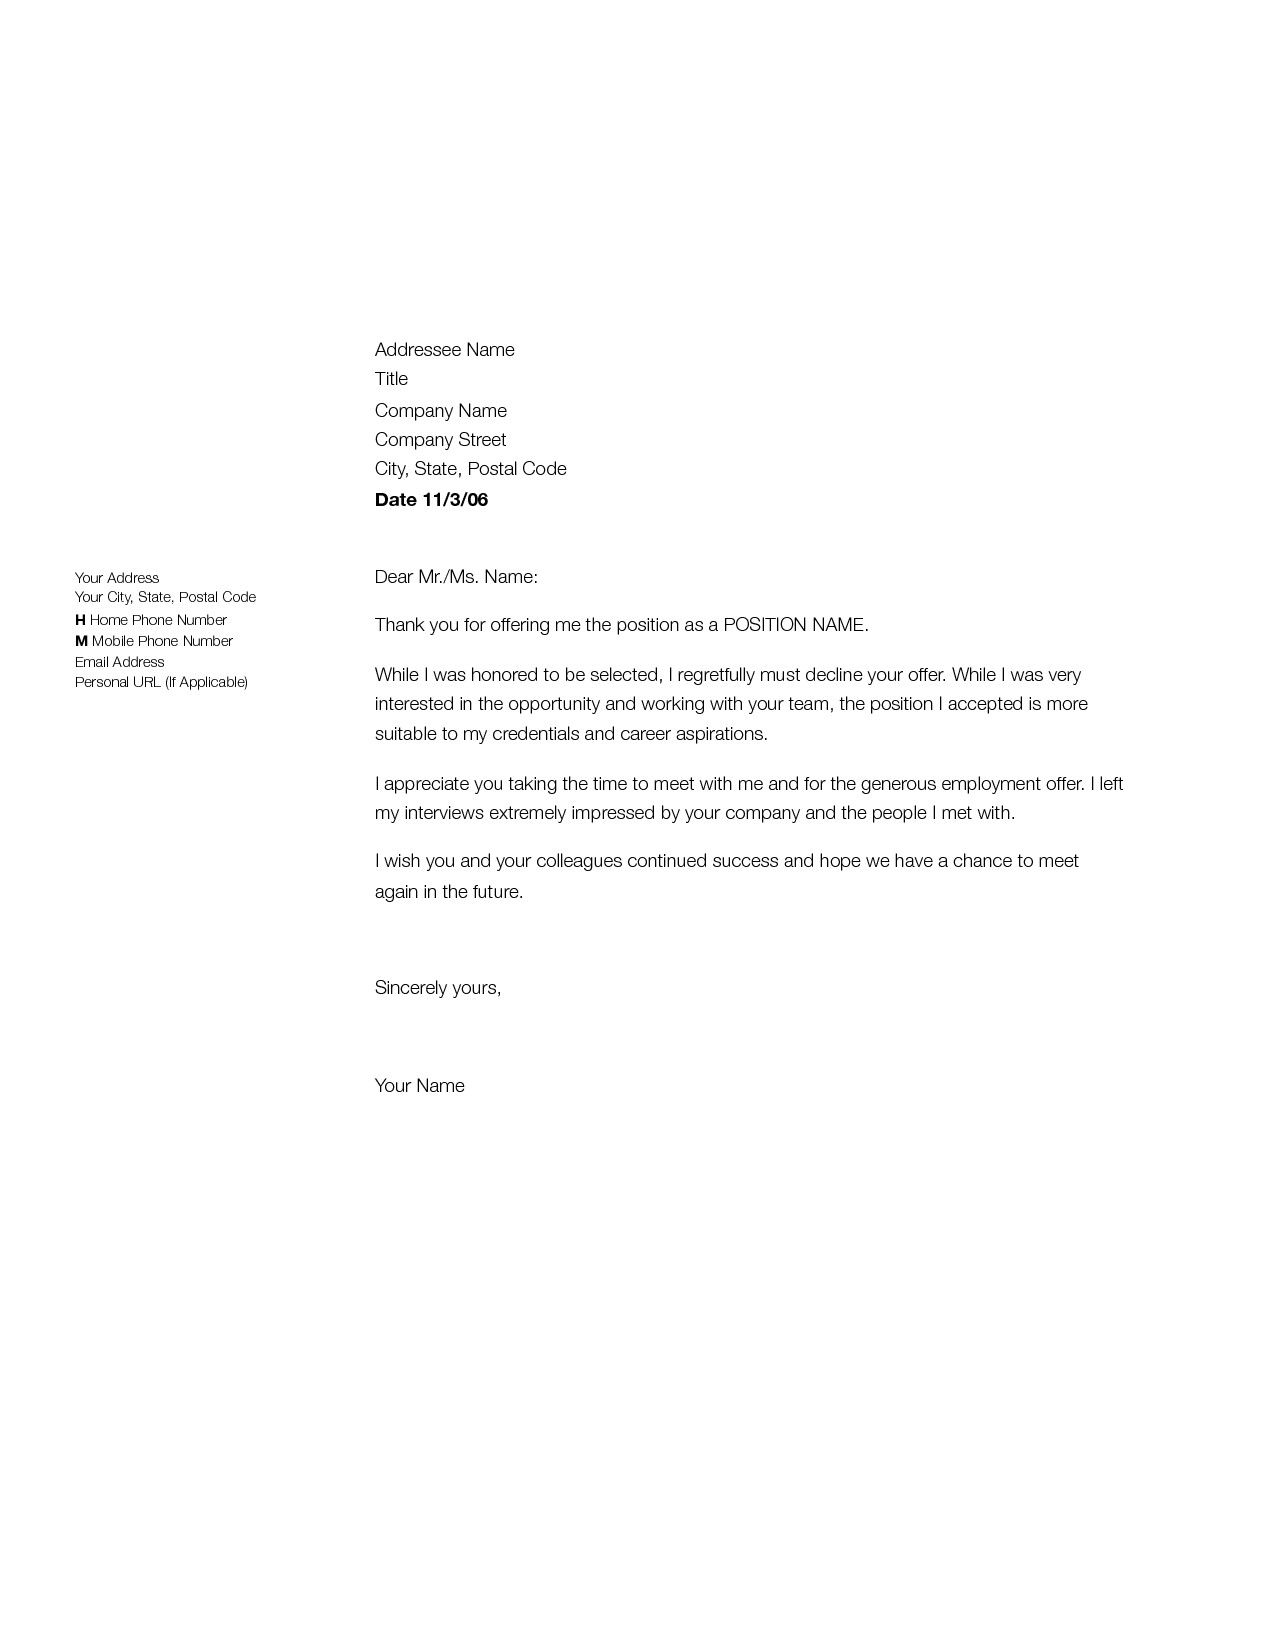 Download fresh sample letter to turn down a job offer at